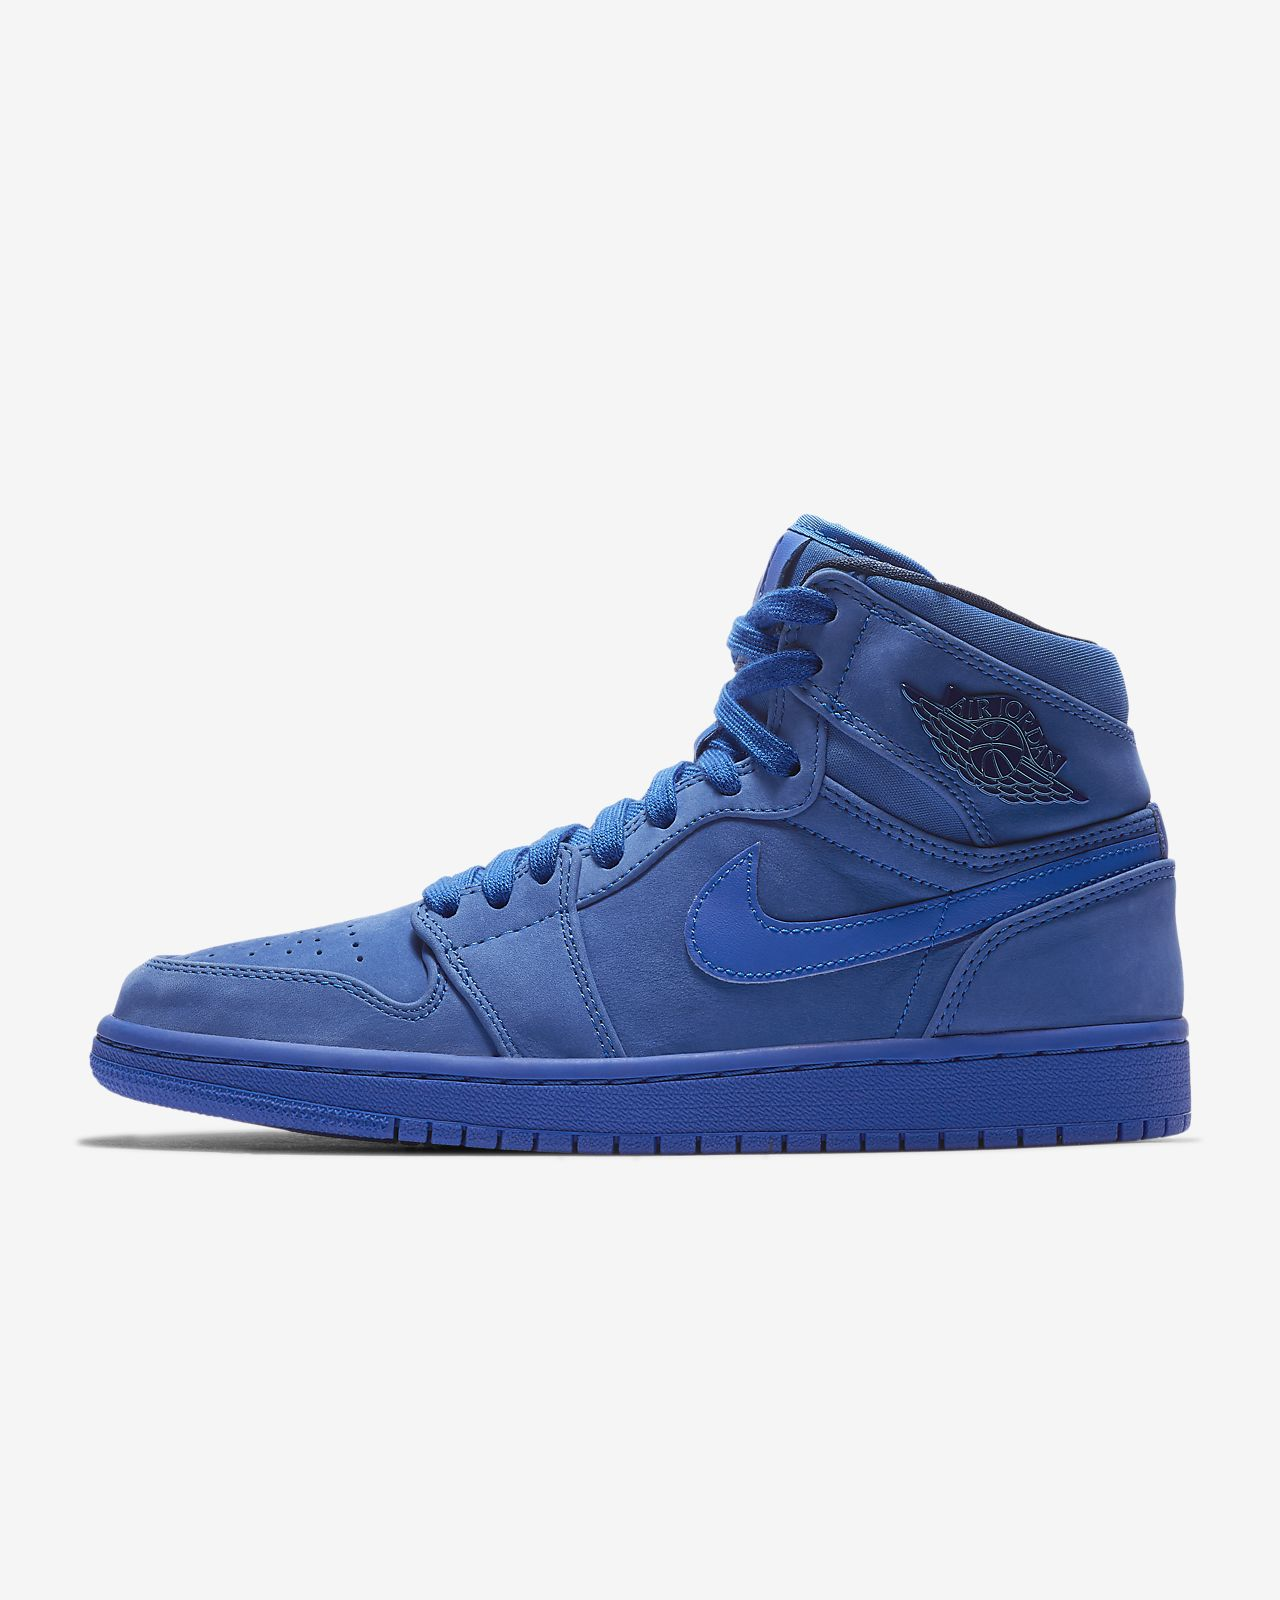 641a6d426419 Air Jordan 1 Retro High Premium Women s Shoe. Nike.com